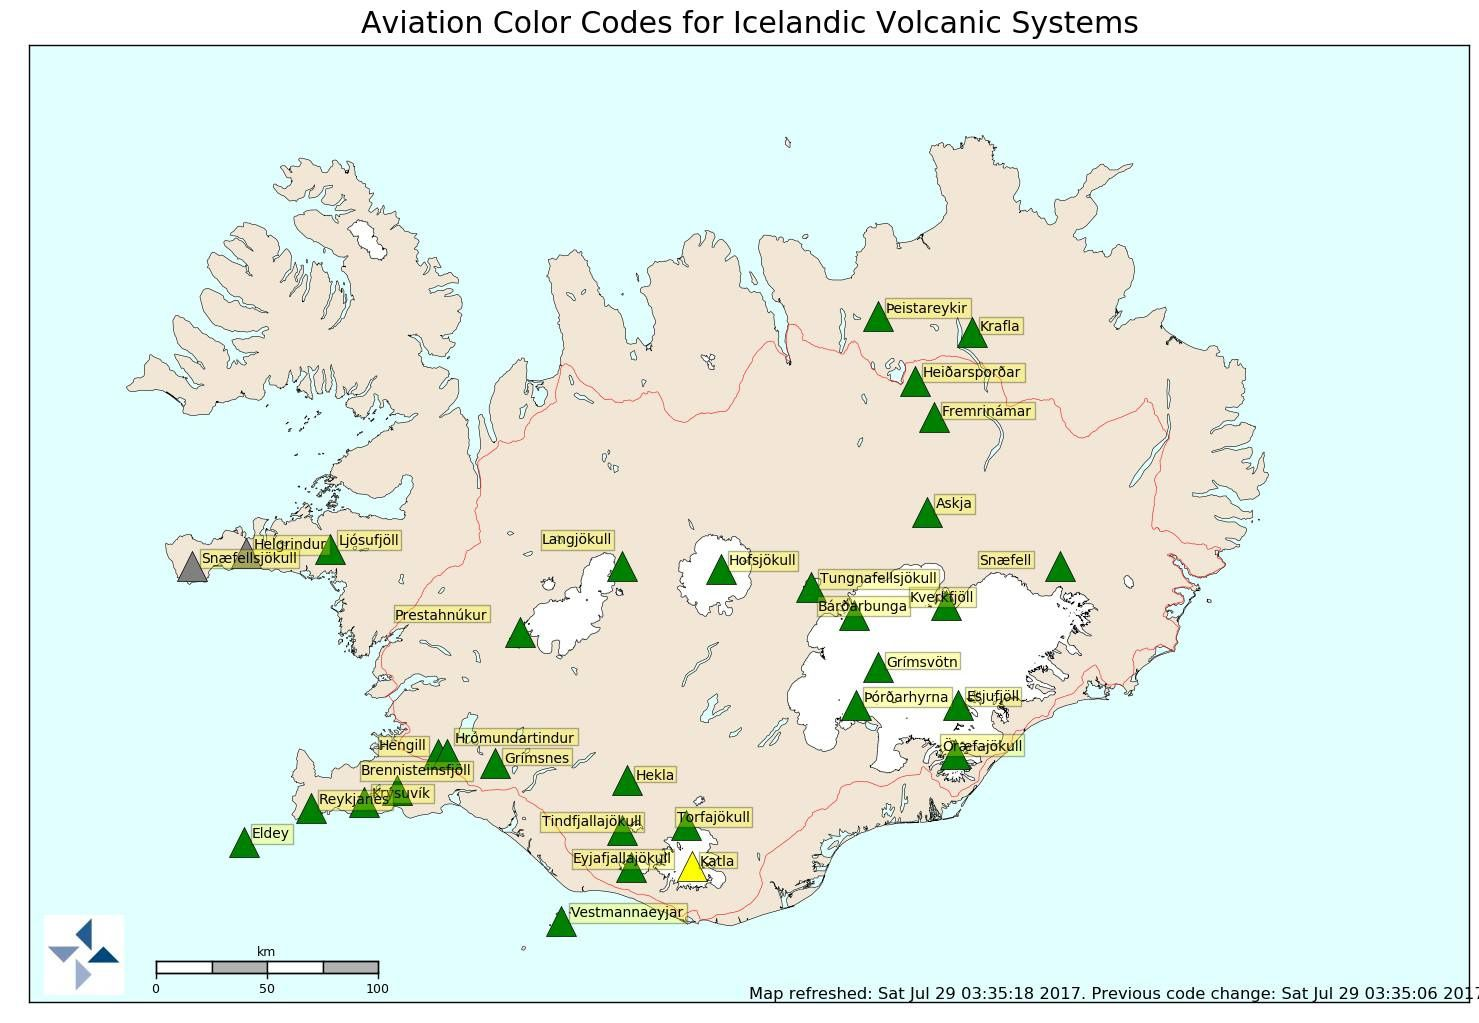 Increase in seismicity in Katla and change to code Yellow - 29.07.2017 / 8:25 GMT - Iceland univ.